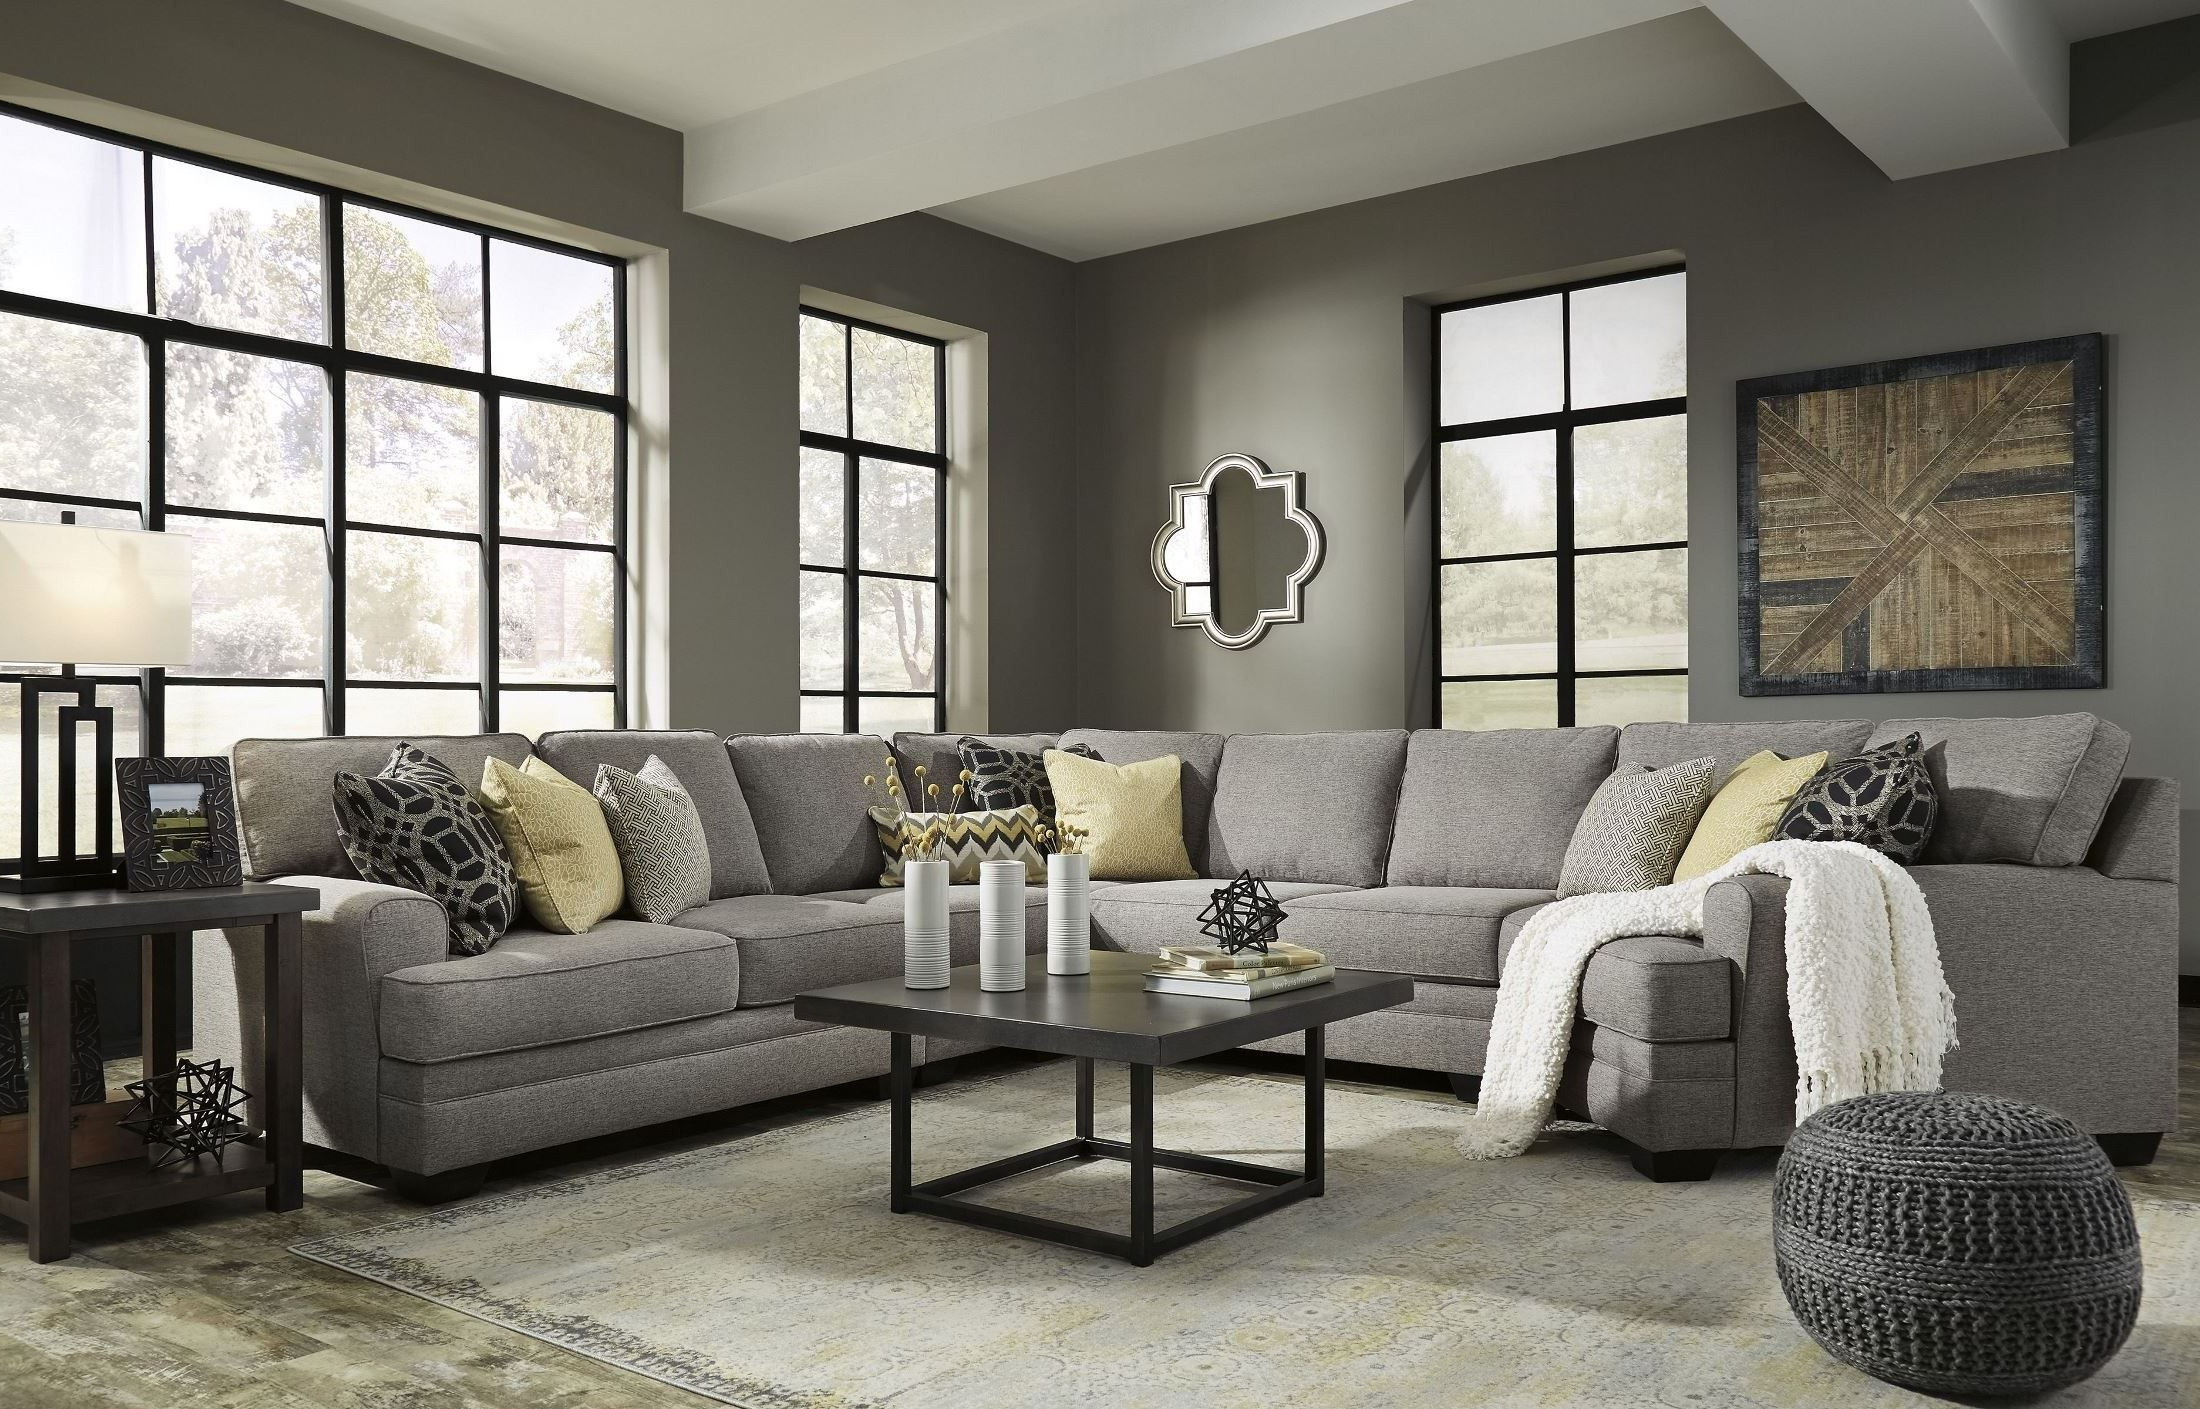 Aspen 2 Piece Sleeper Sectionals With Raf Chaise Within Most Recent Cresson Pewter Laf Cuddler Sectional From Ashley (Gallery 14 of 20)